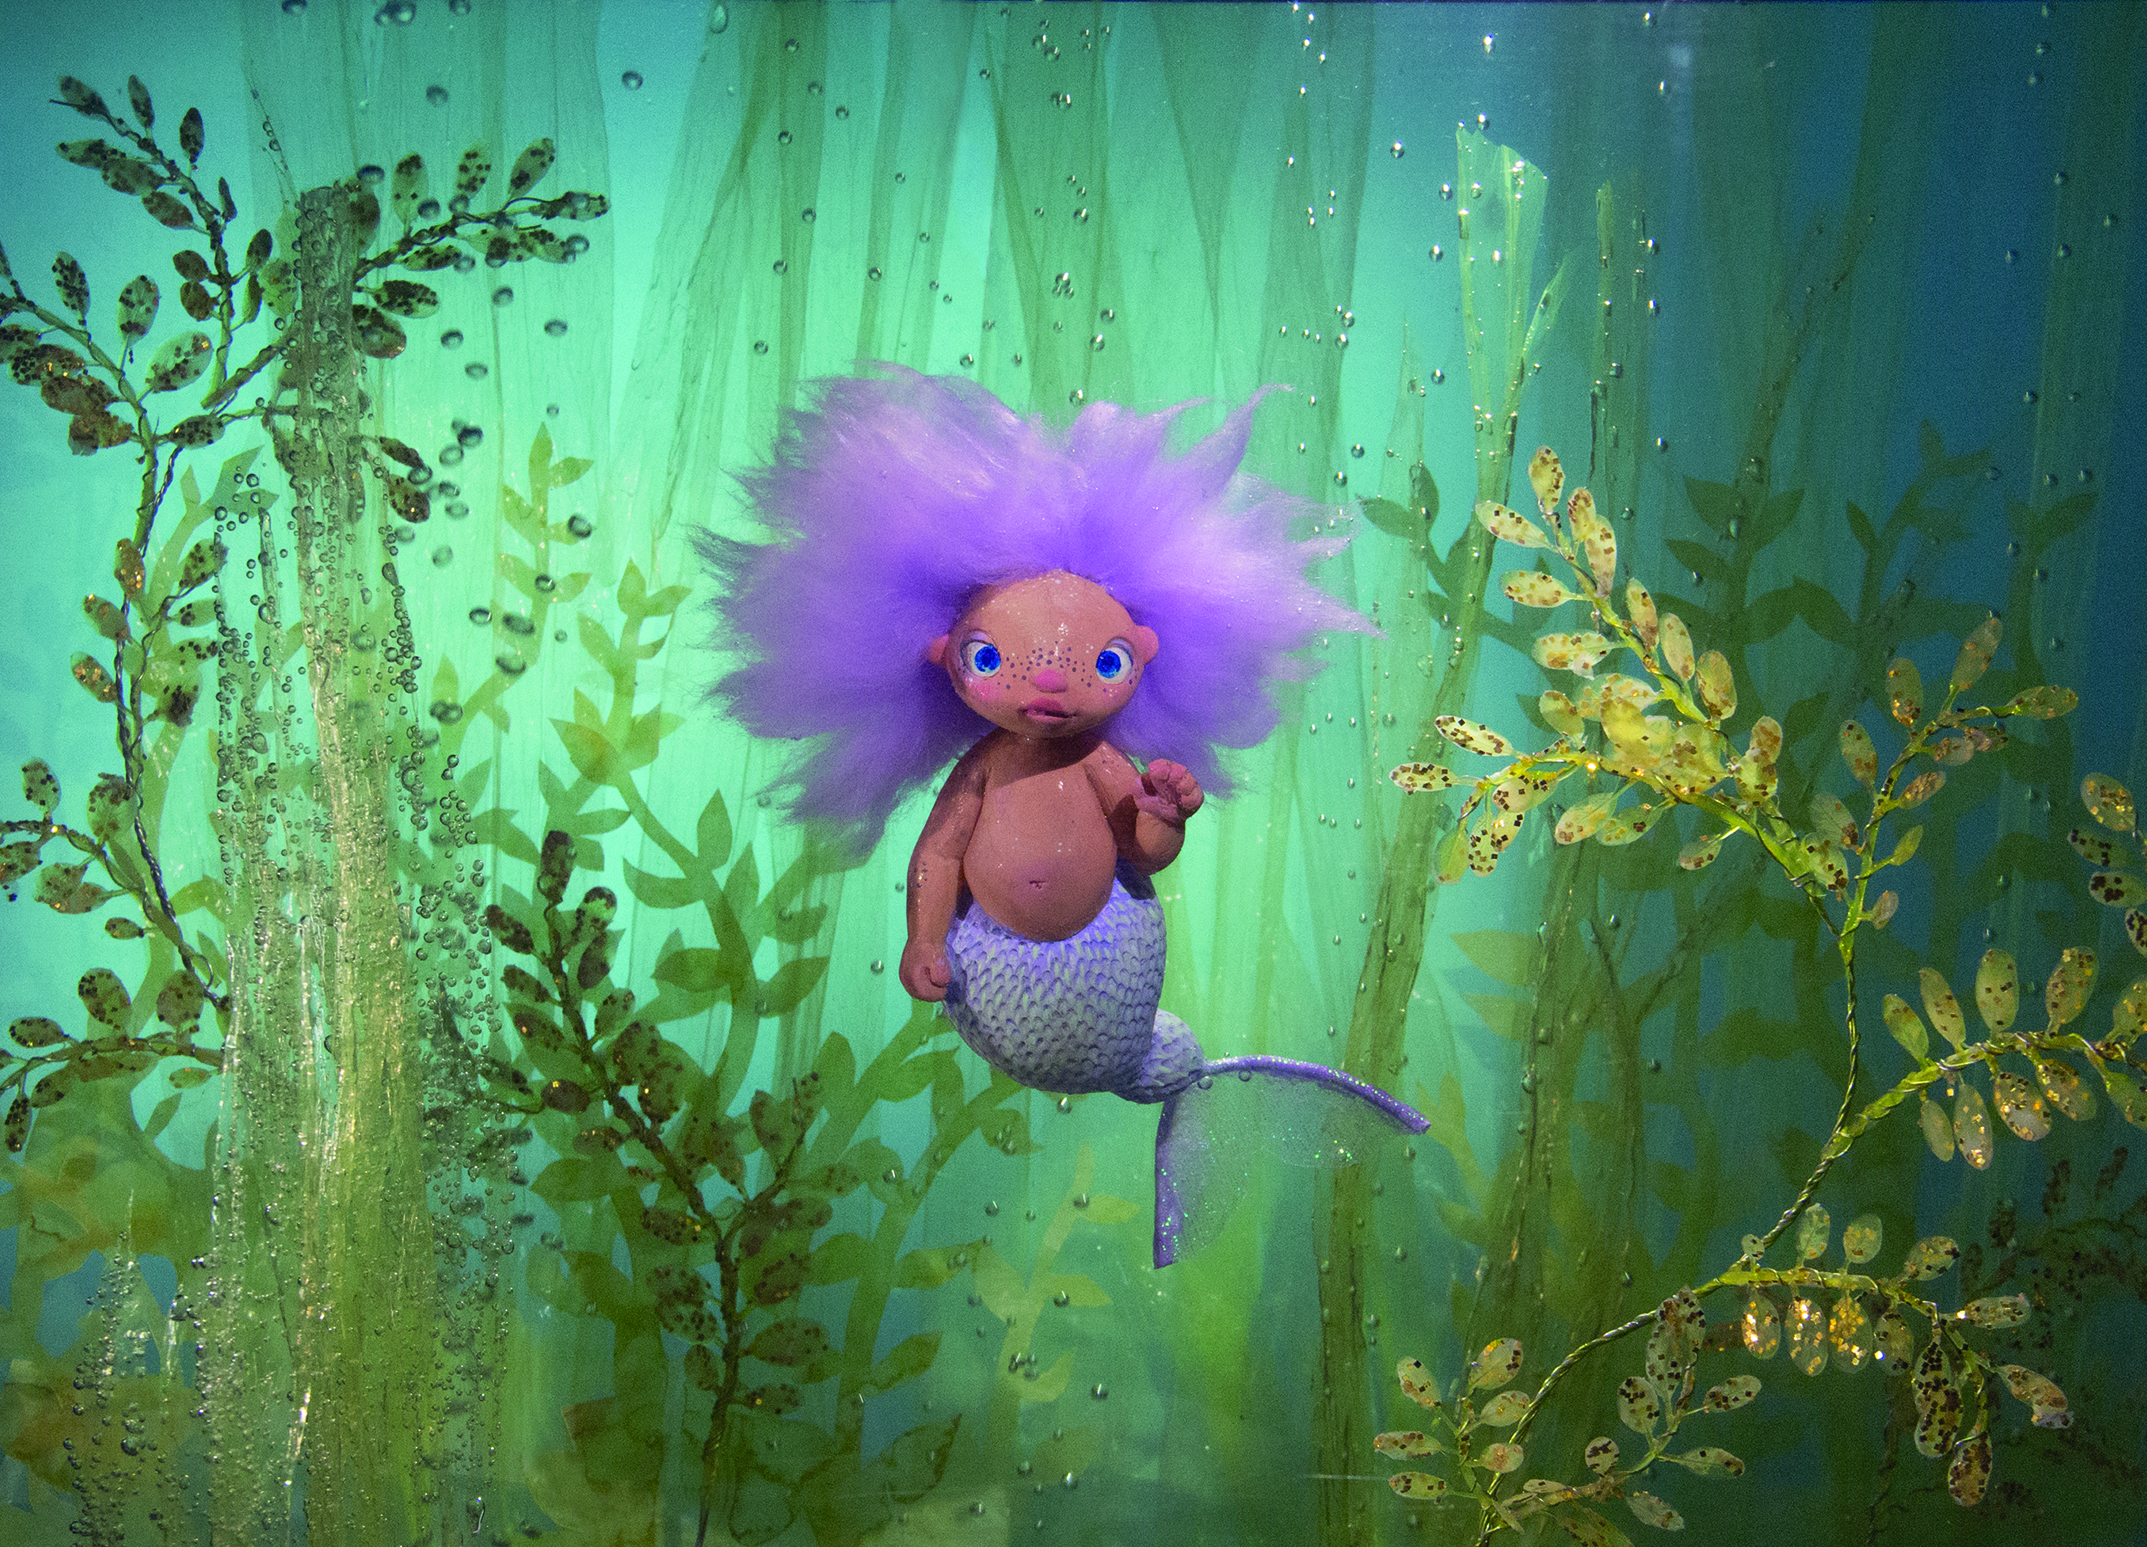 A little merbaby sculpture photographed underwater for a children's book idea I've been working on.